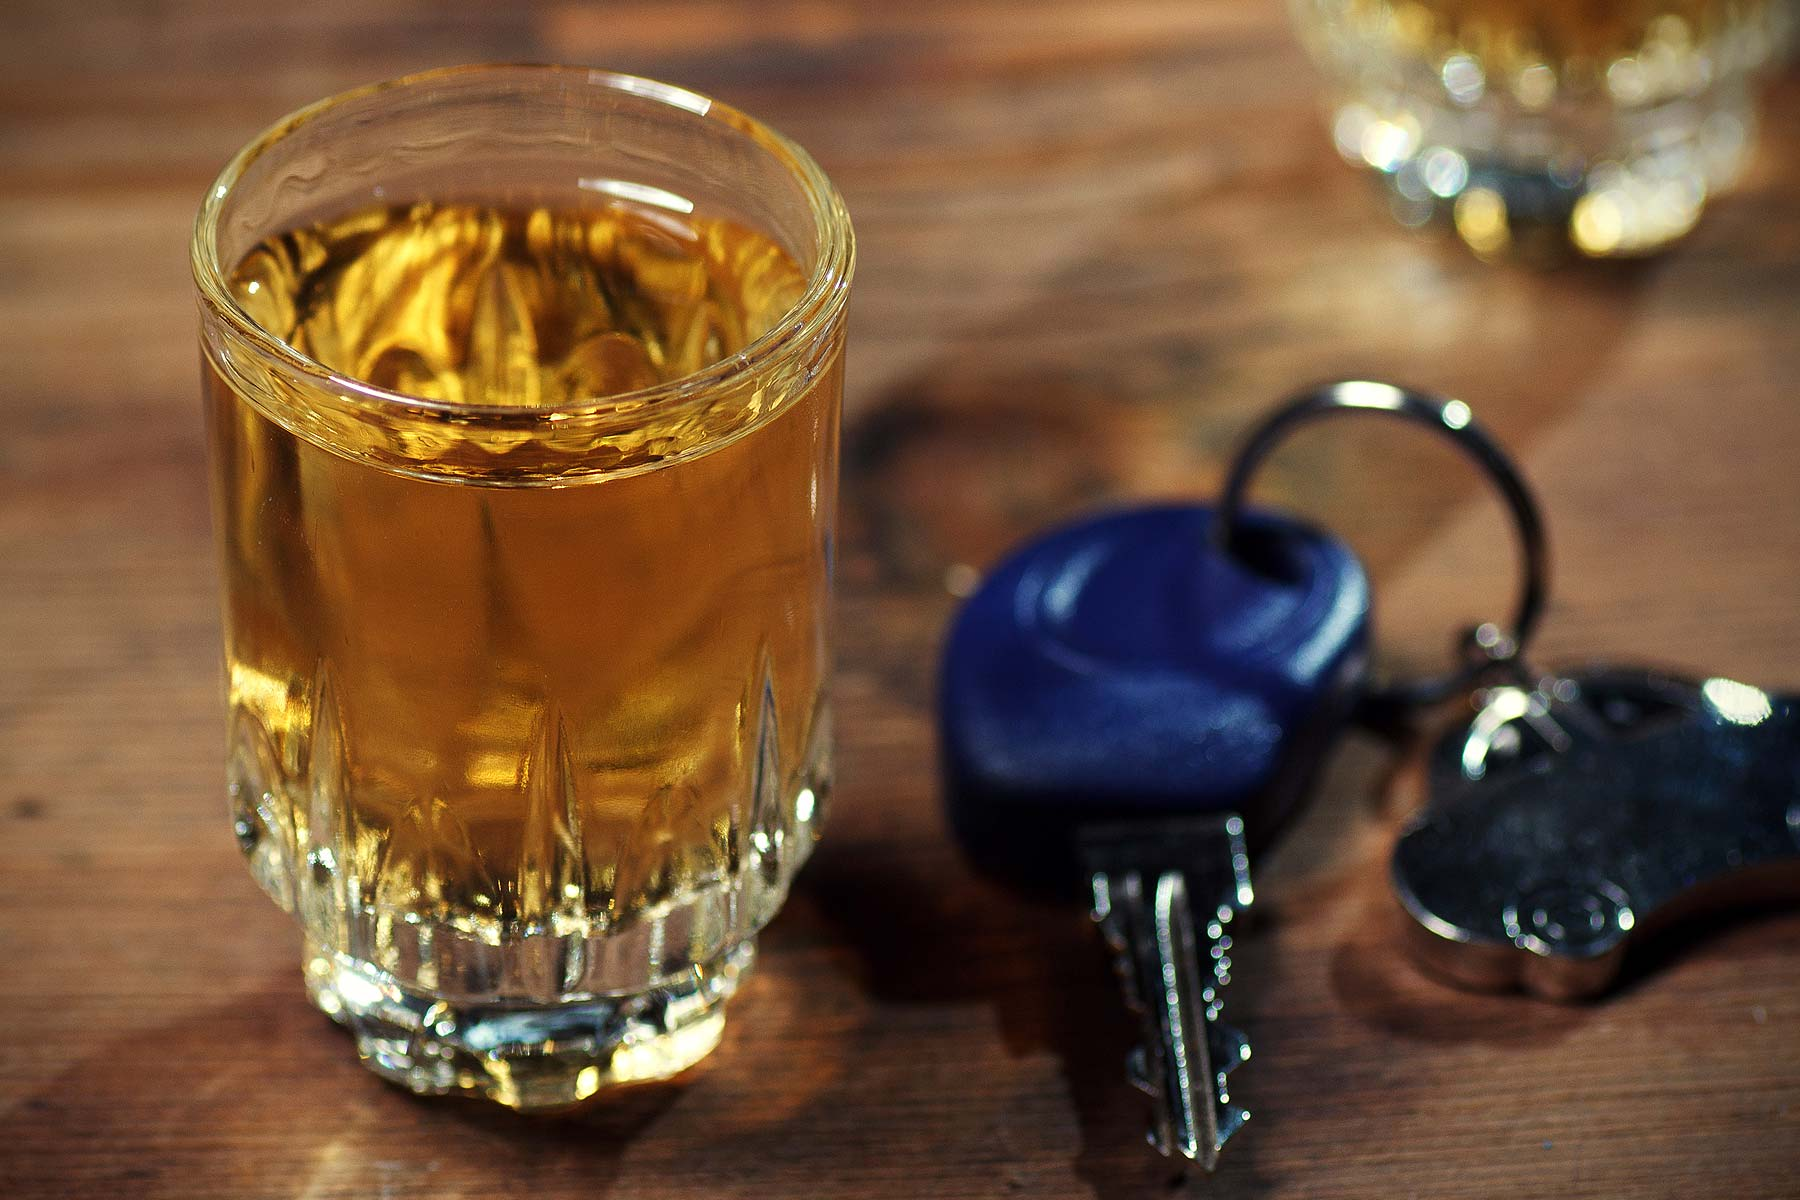 dui, man faces charges